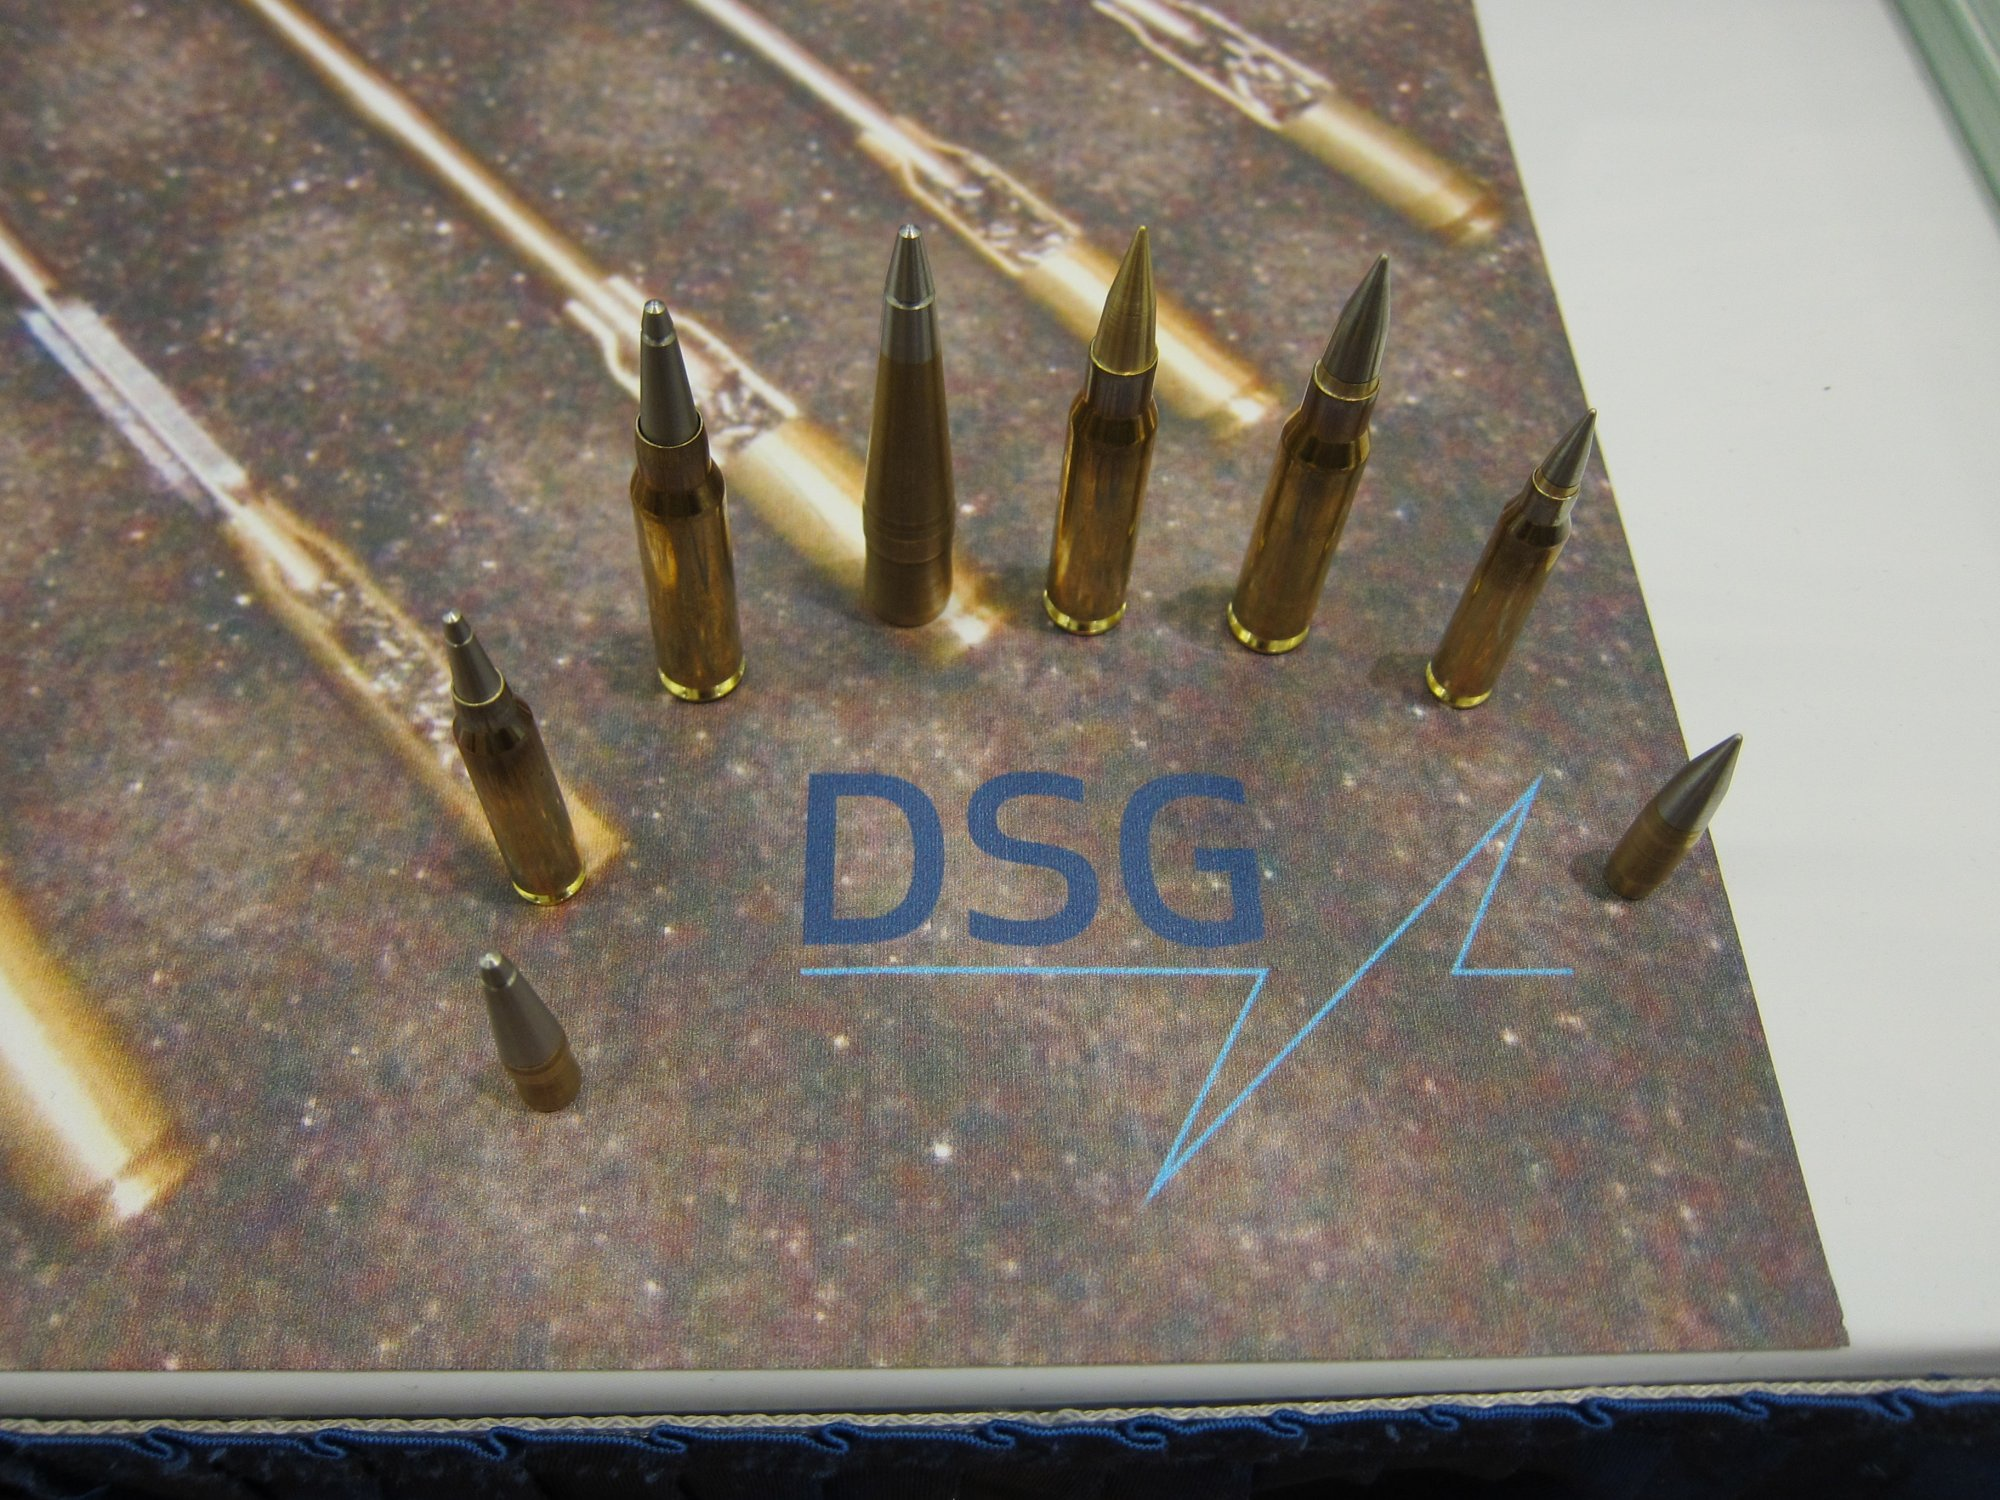 DSG Defence  Security Group Multi Environment Ammunition MEA Dual Core Supercavitating Ammunition Underwater Rifle Ammo Richard Morgan NDIA Small Arms 2011 DefenseReview.com DR 29 <!  :en  >DR Exclusive! Revolutionary DSG Technology Supercavitating Rifle Ammo for Shooting Underwater (Tactical Underwater Shooting), from Air to Water, and from Water to Air: Amphibious Multi Environment Ammunition (MEA) for Tactical Waterborne Operations (Photos and Video!) <!  :  >